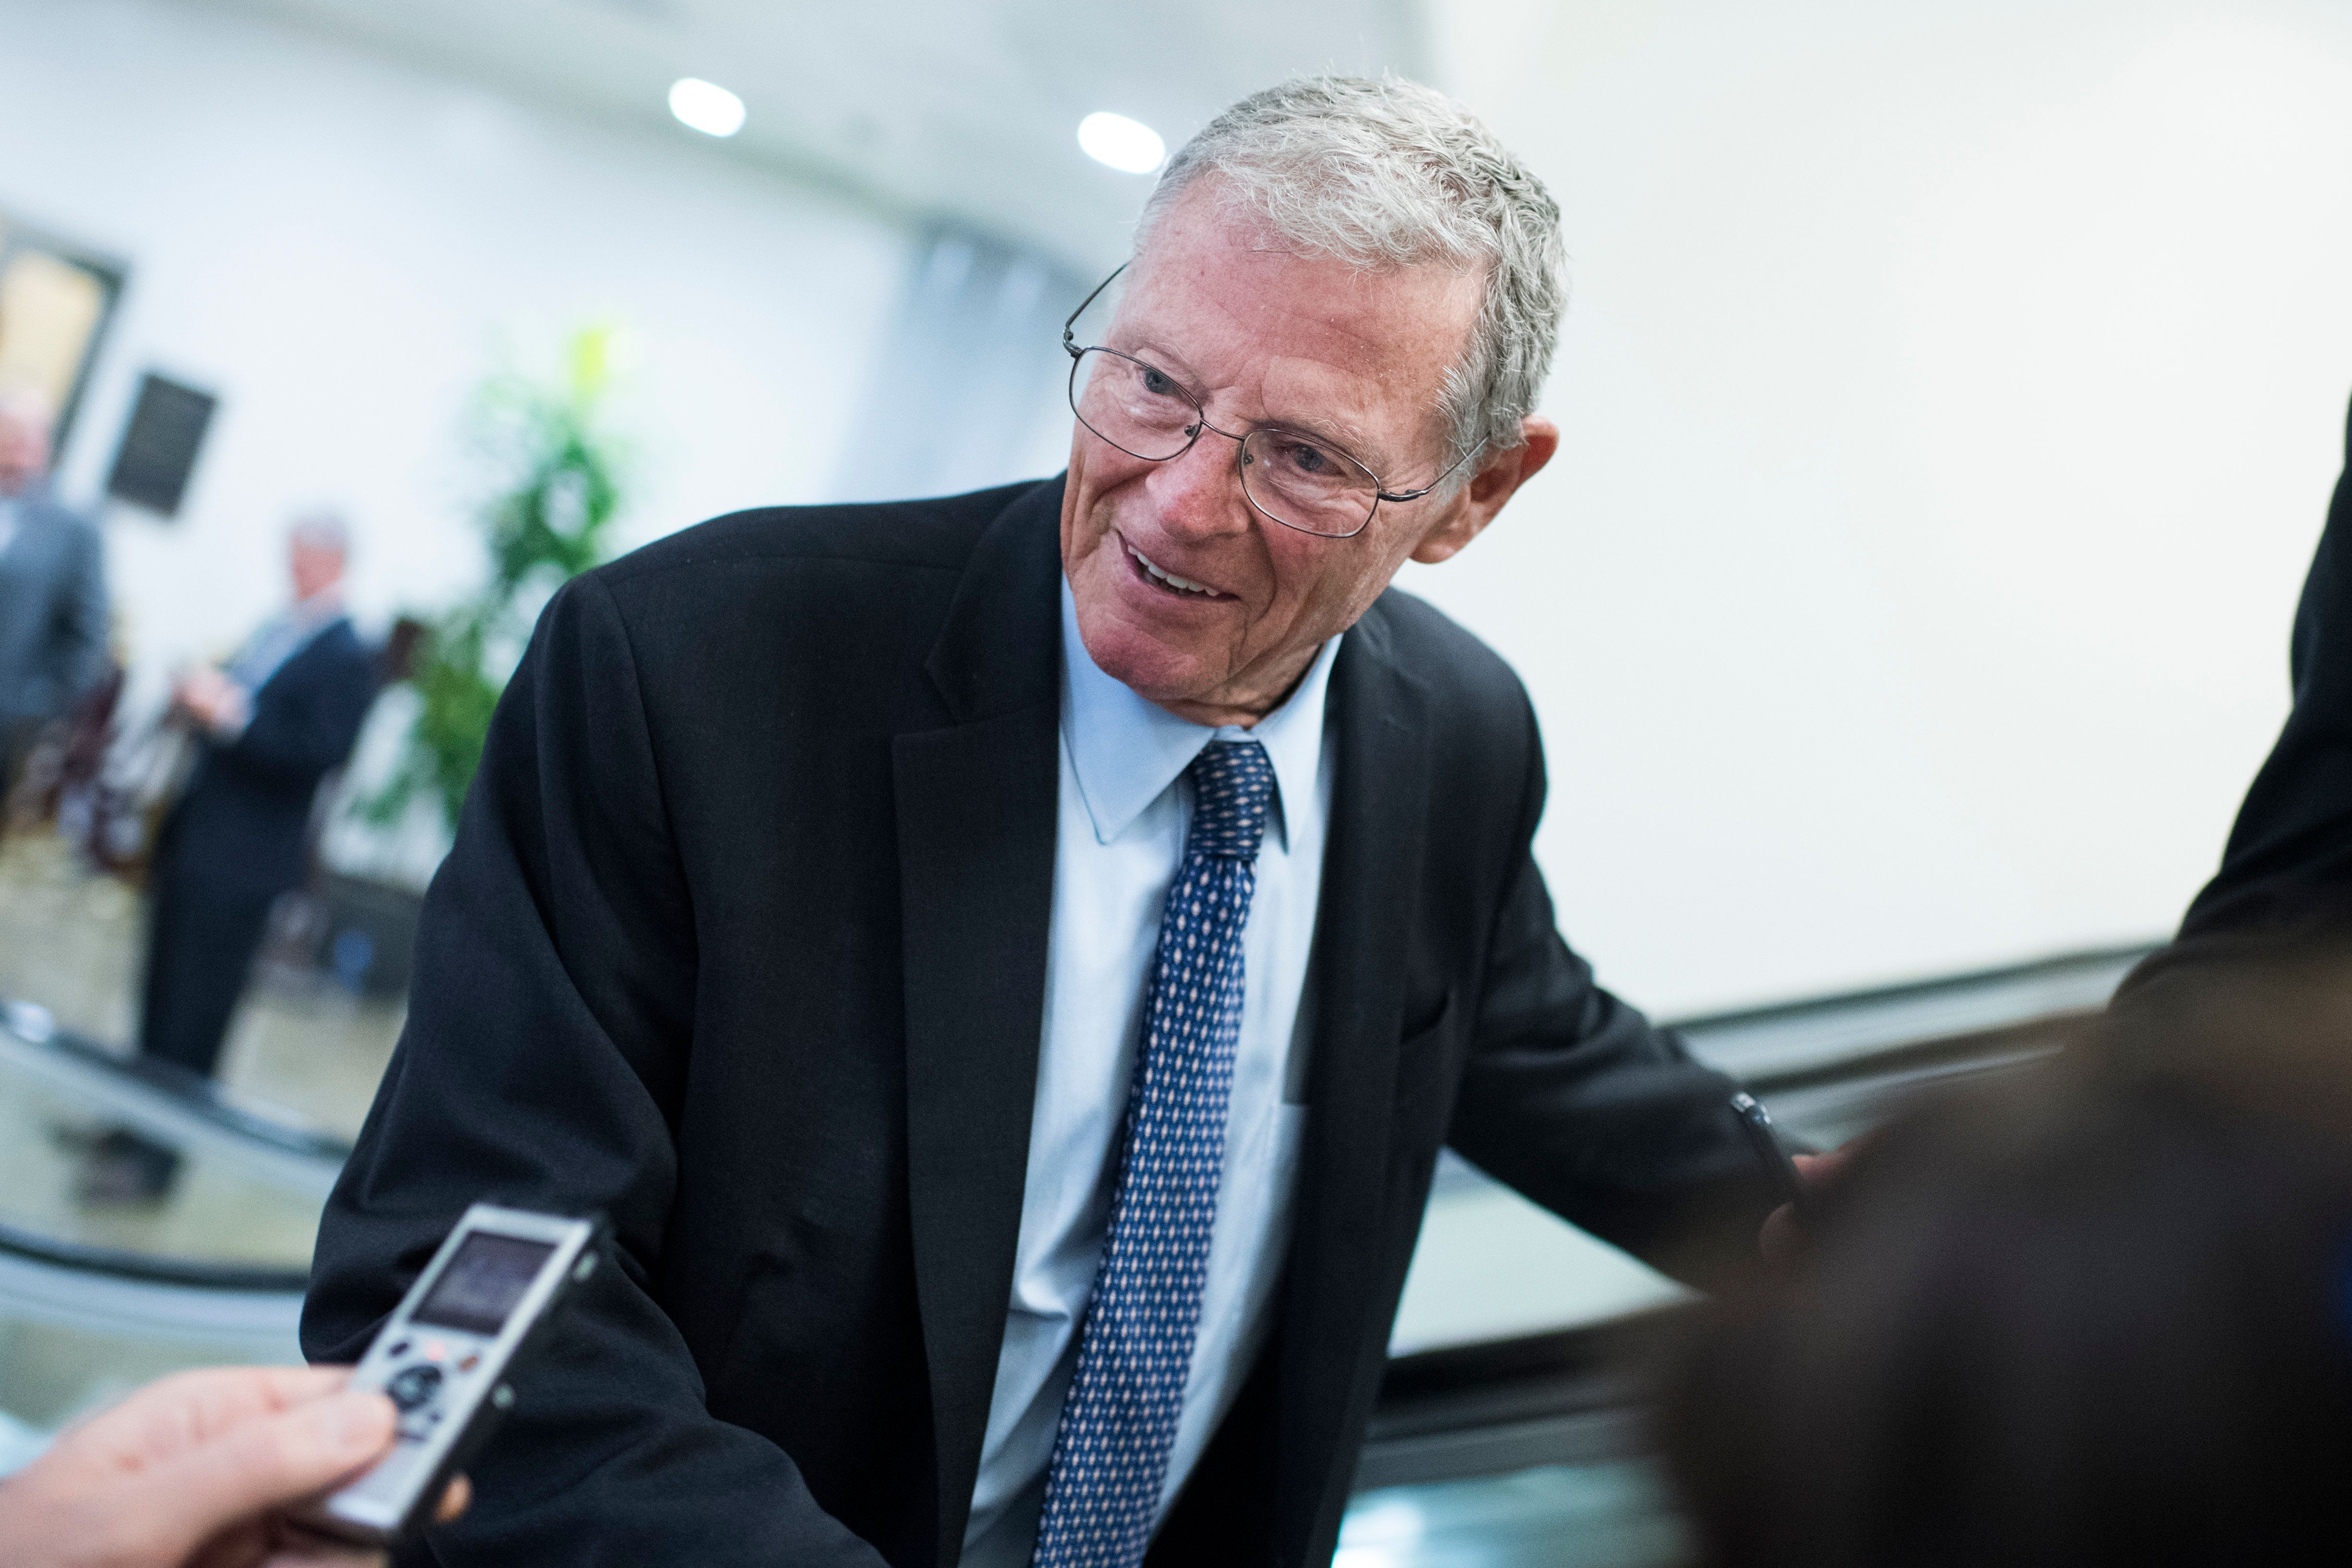 UNITED STATES - SEPTEMBER 25: Sen. James Inhofe, R-Okla., talks with reporters in the basement of the Capitol before the Senate policy luncheons on September 25, 2018. (Photo By Tom Williams/CQ Roll Call)